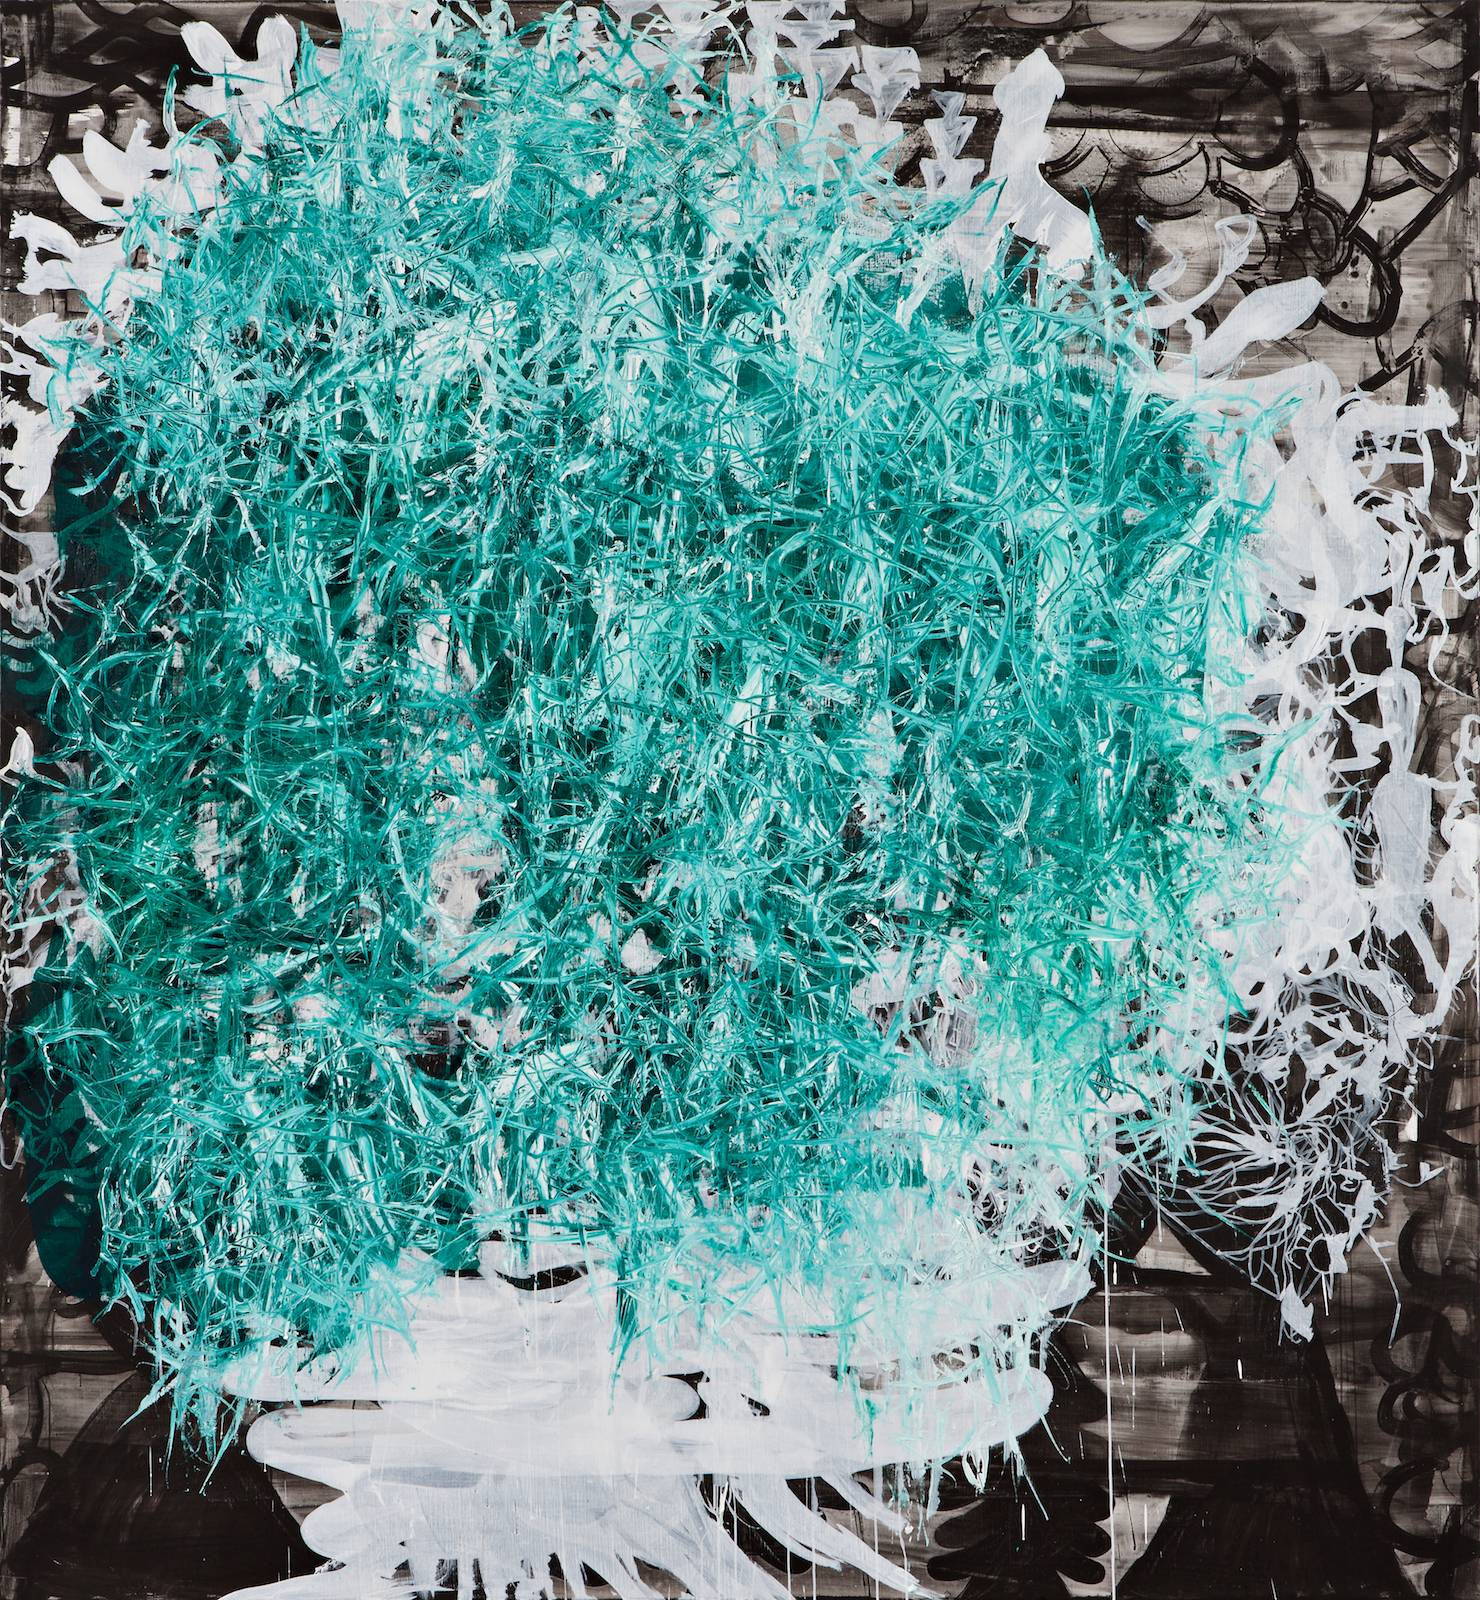 The Letharia Painting No. 25, 2013, acrylic and oil on canvas, 265 x 245 cm